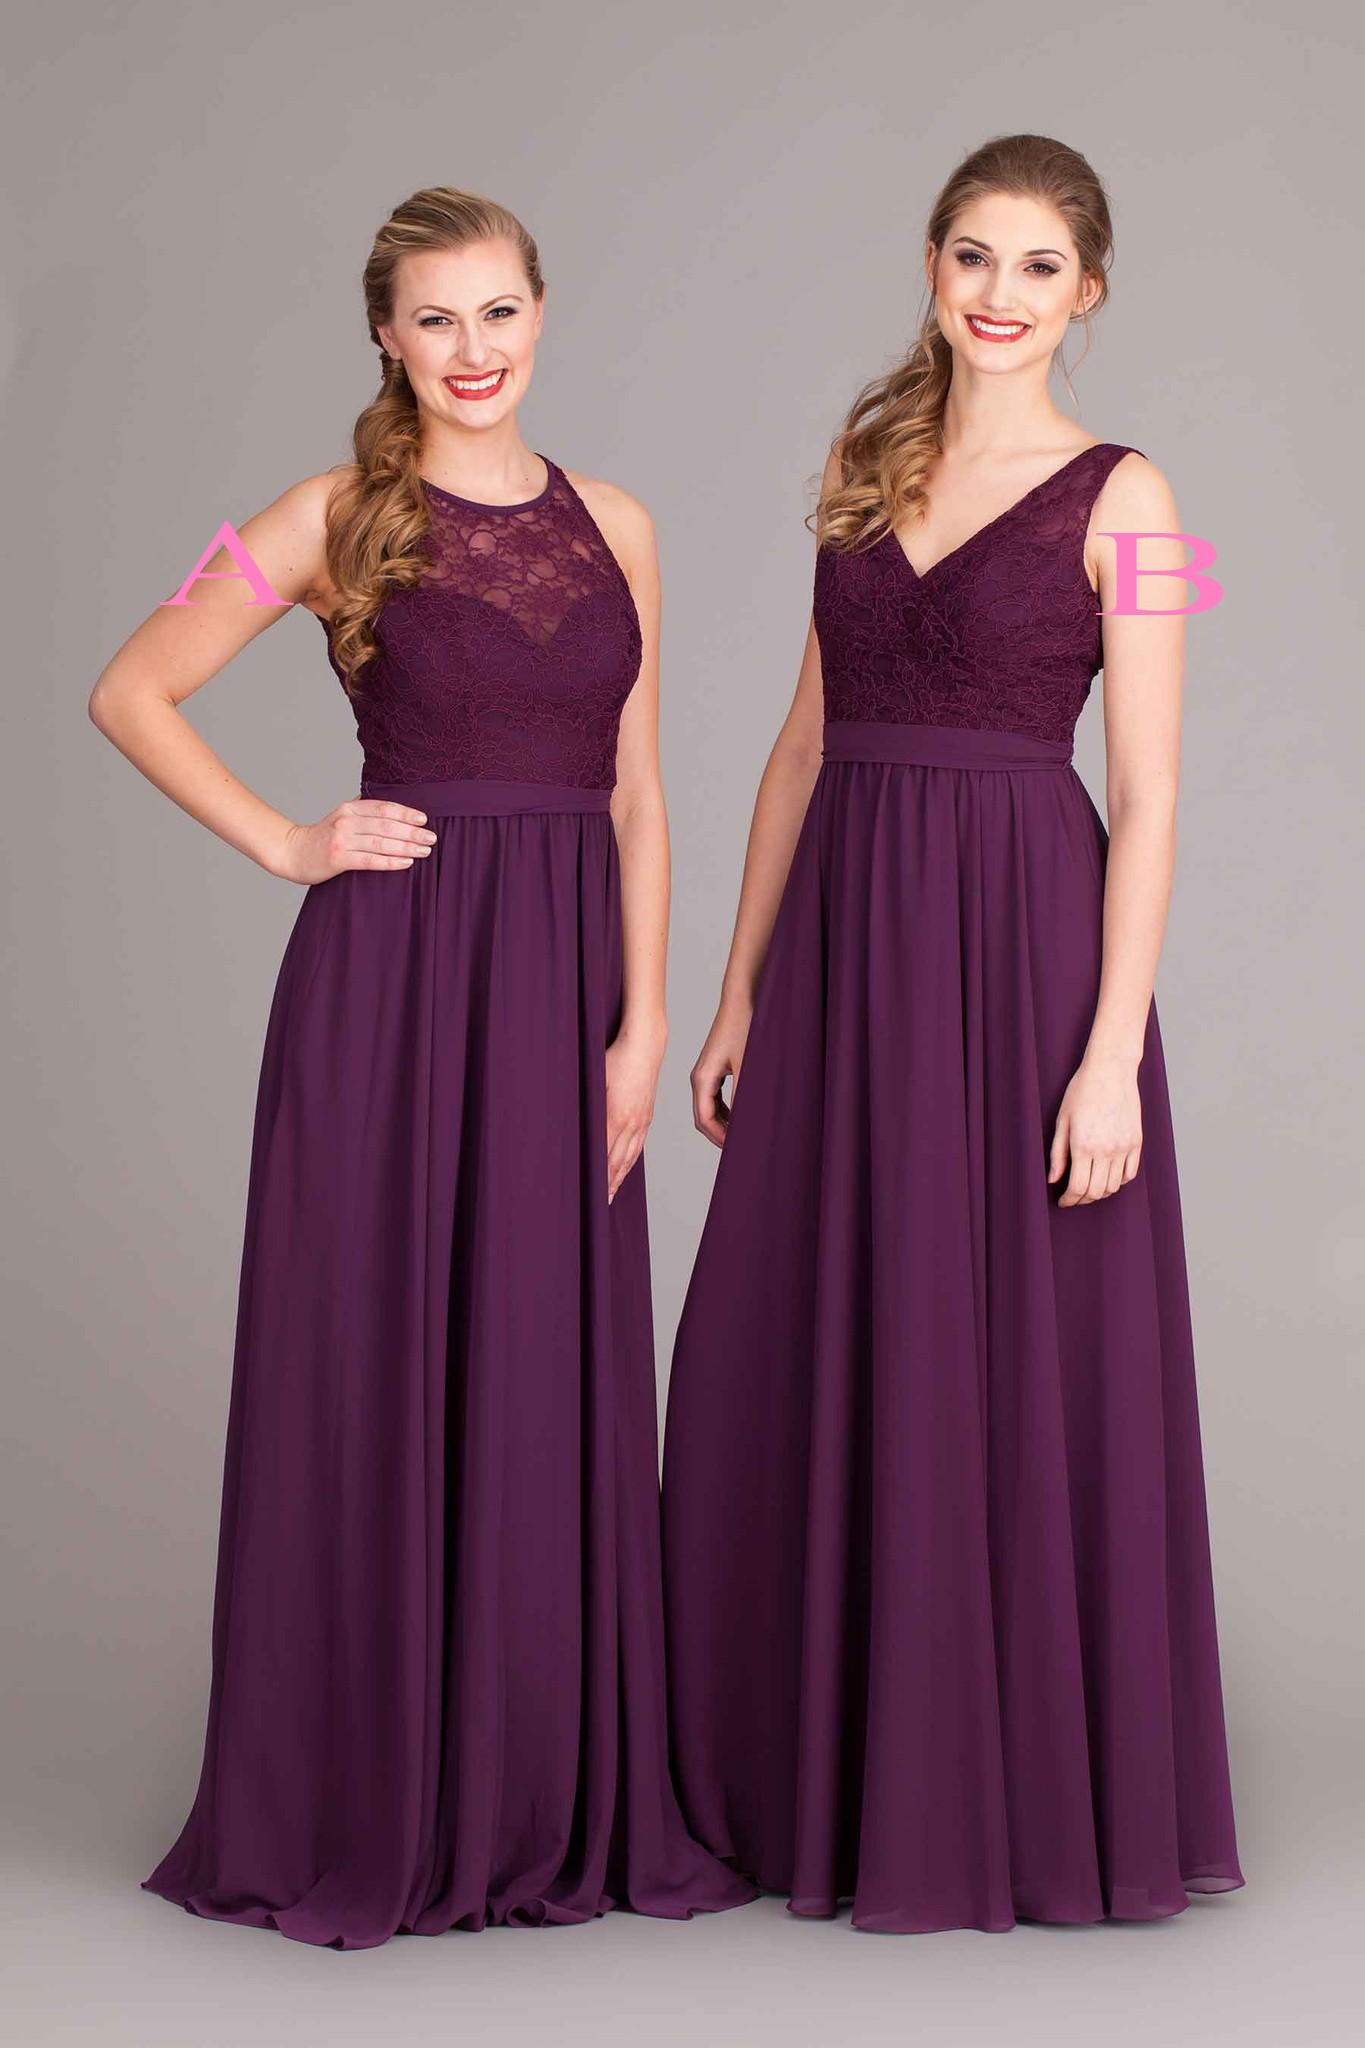 2017 eggplant purple bridesmaid dresses lace and chiffon a line 2017 eggplant purple bridesmaid dresses lace and chiffon a line two different styles floor length summer beach maid of honor dresses cheap cheap dresses ombrellifo Gallery